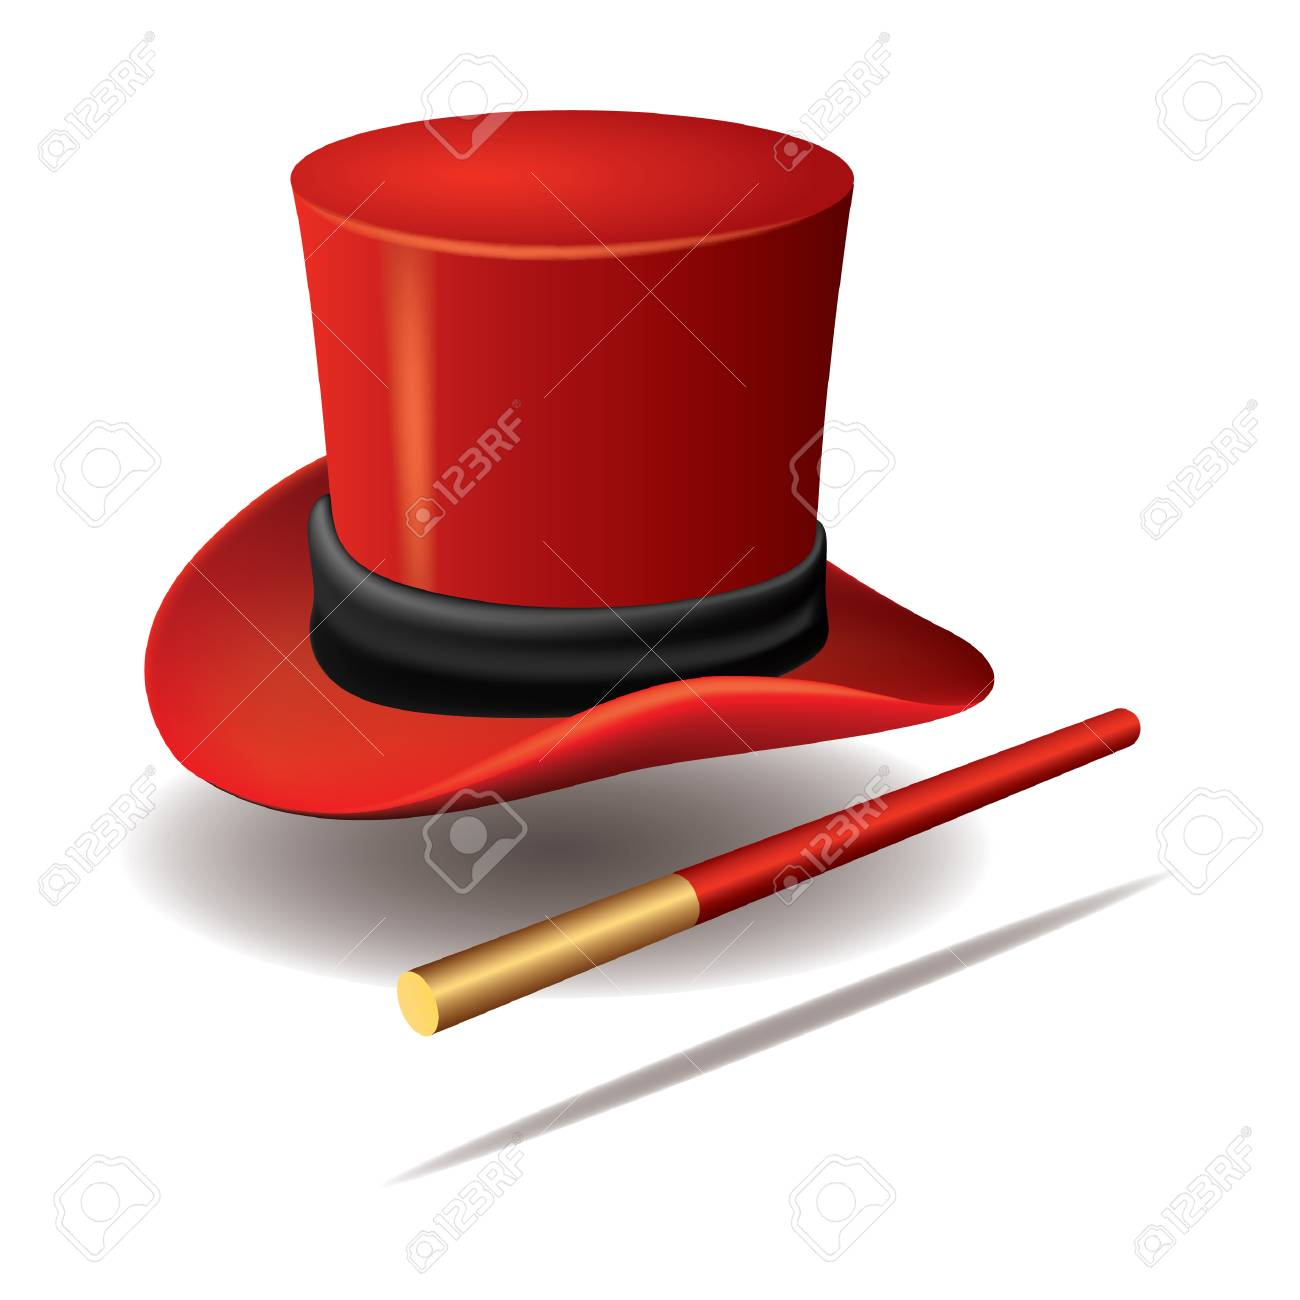 magician hat with wand - 106671414